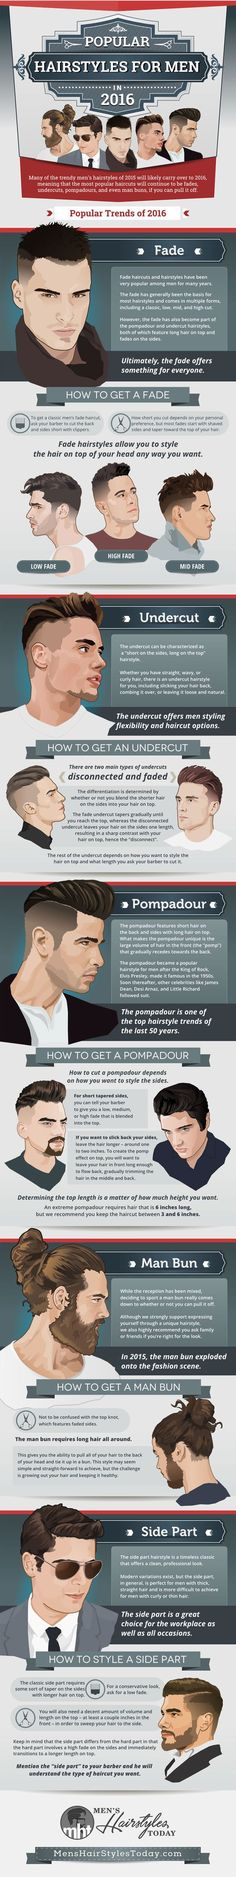 Popular Men's Hairstyles and Haircuts